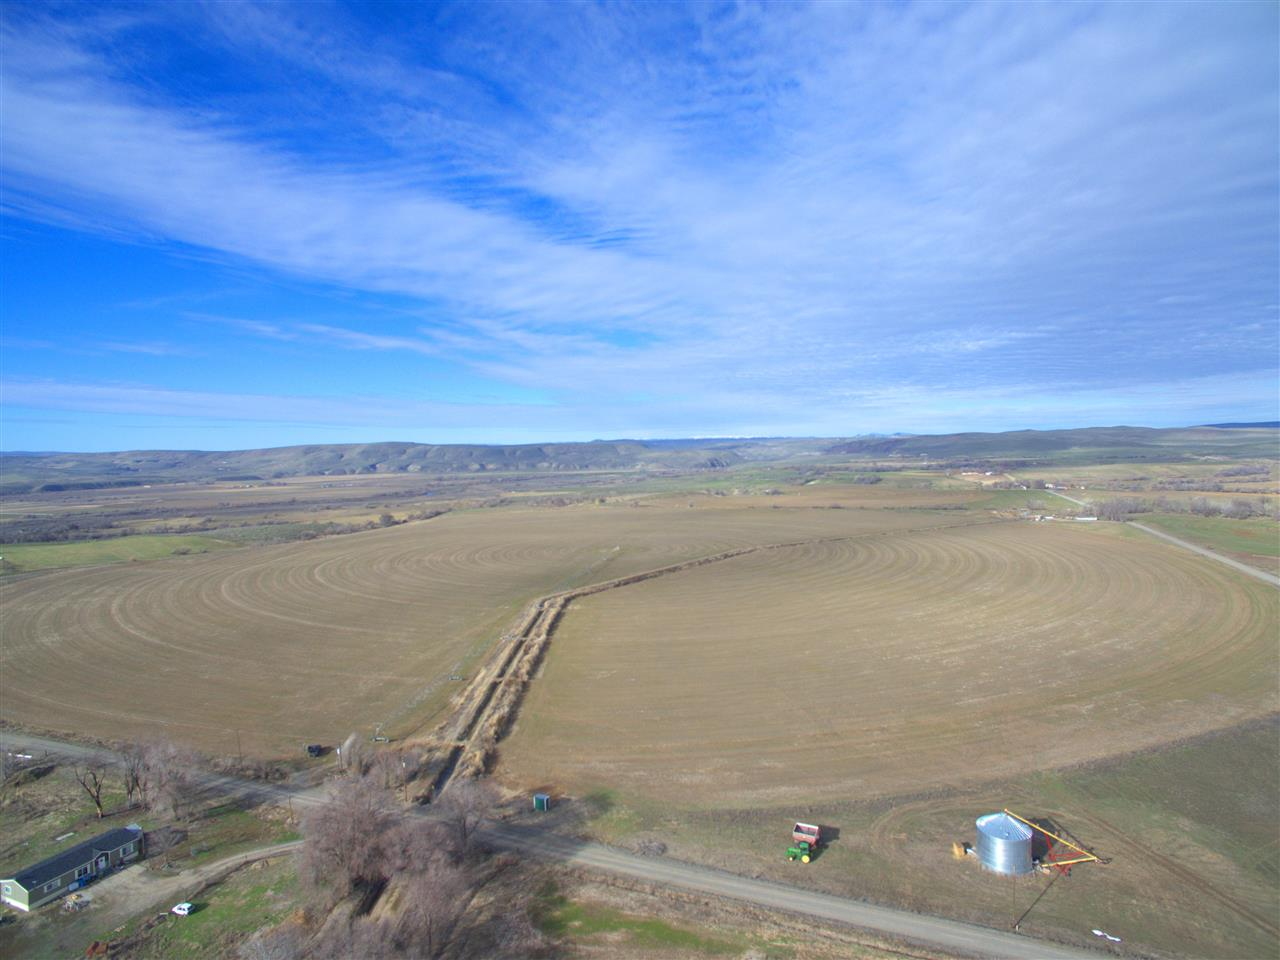 Farm / Ranch for Sale at Tbd Loop Rd Vale, Oregon 97918